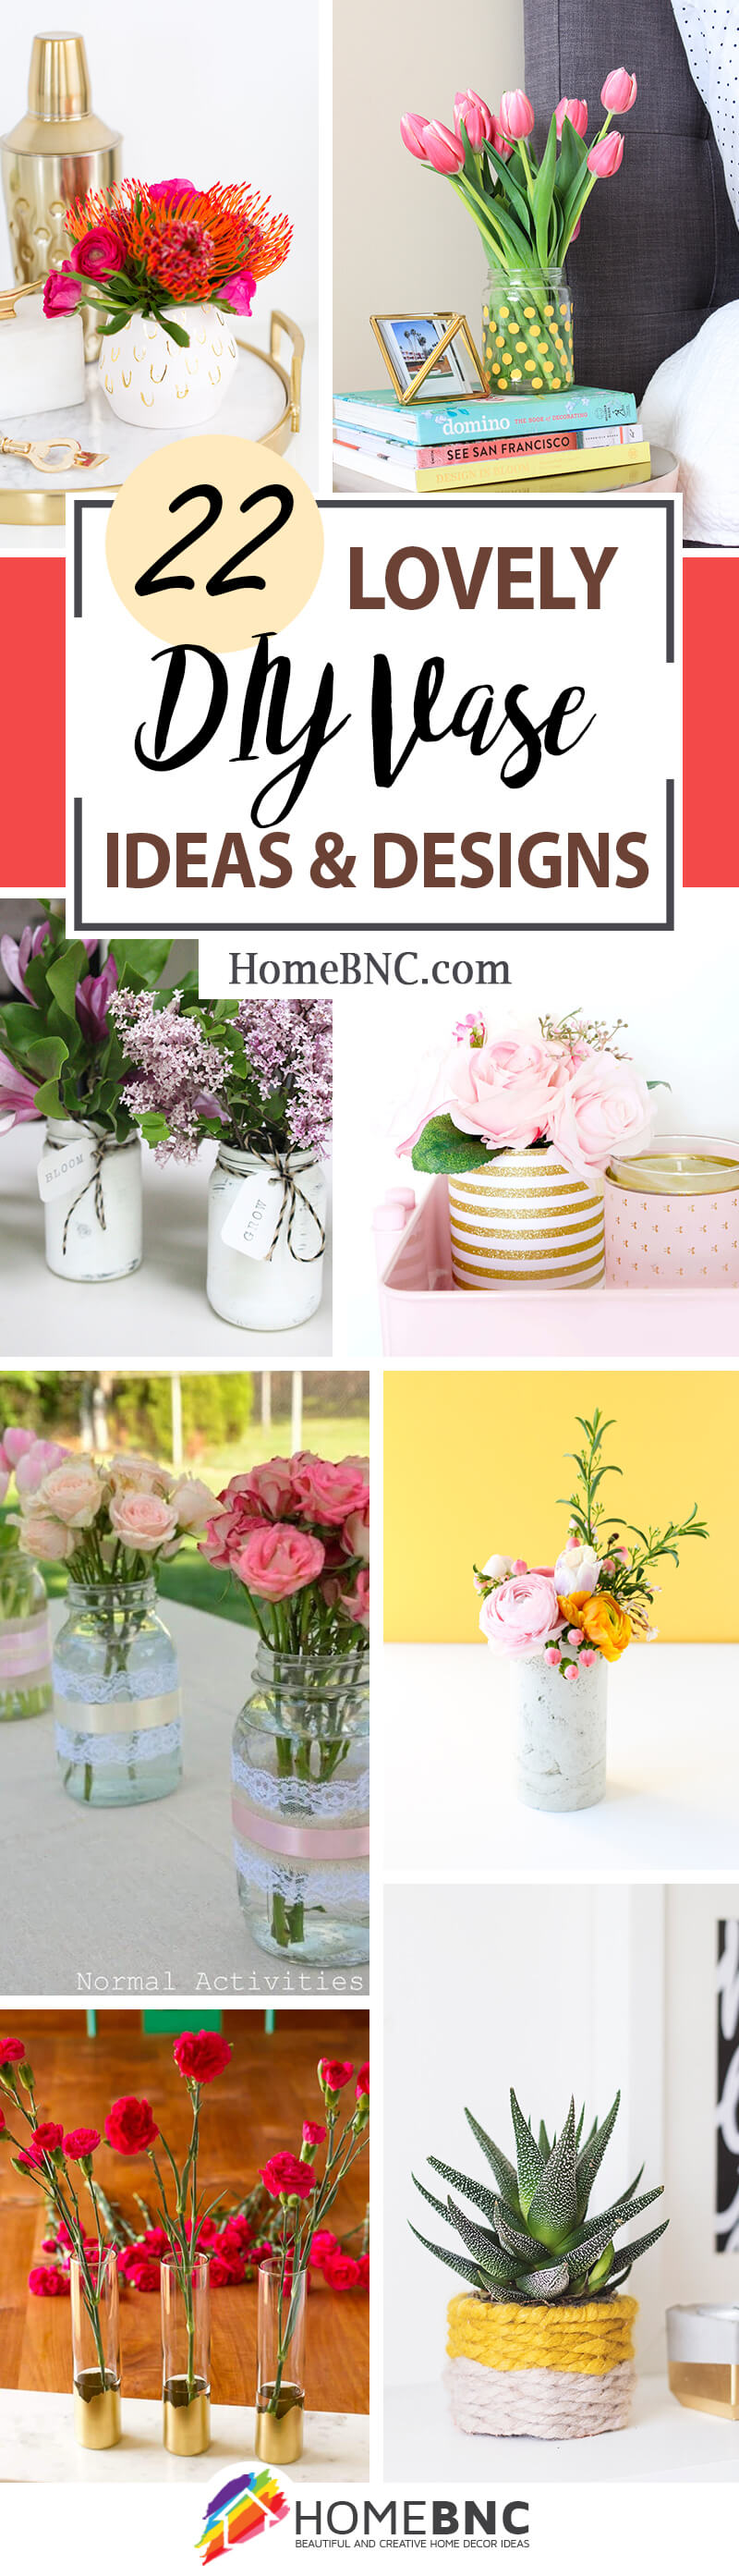 DIY Vase Ideas